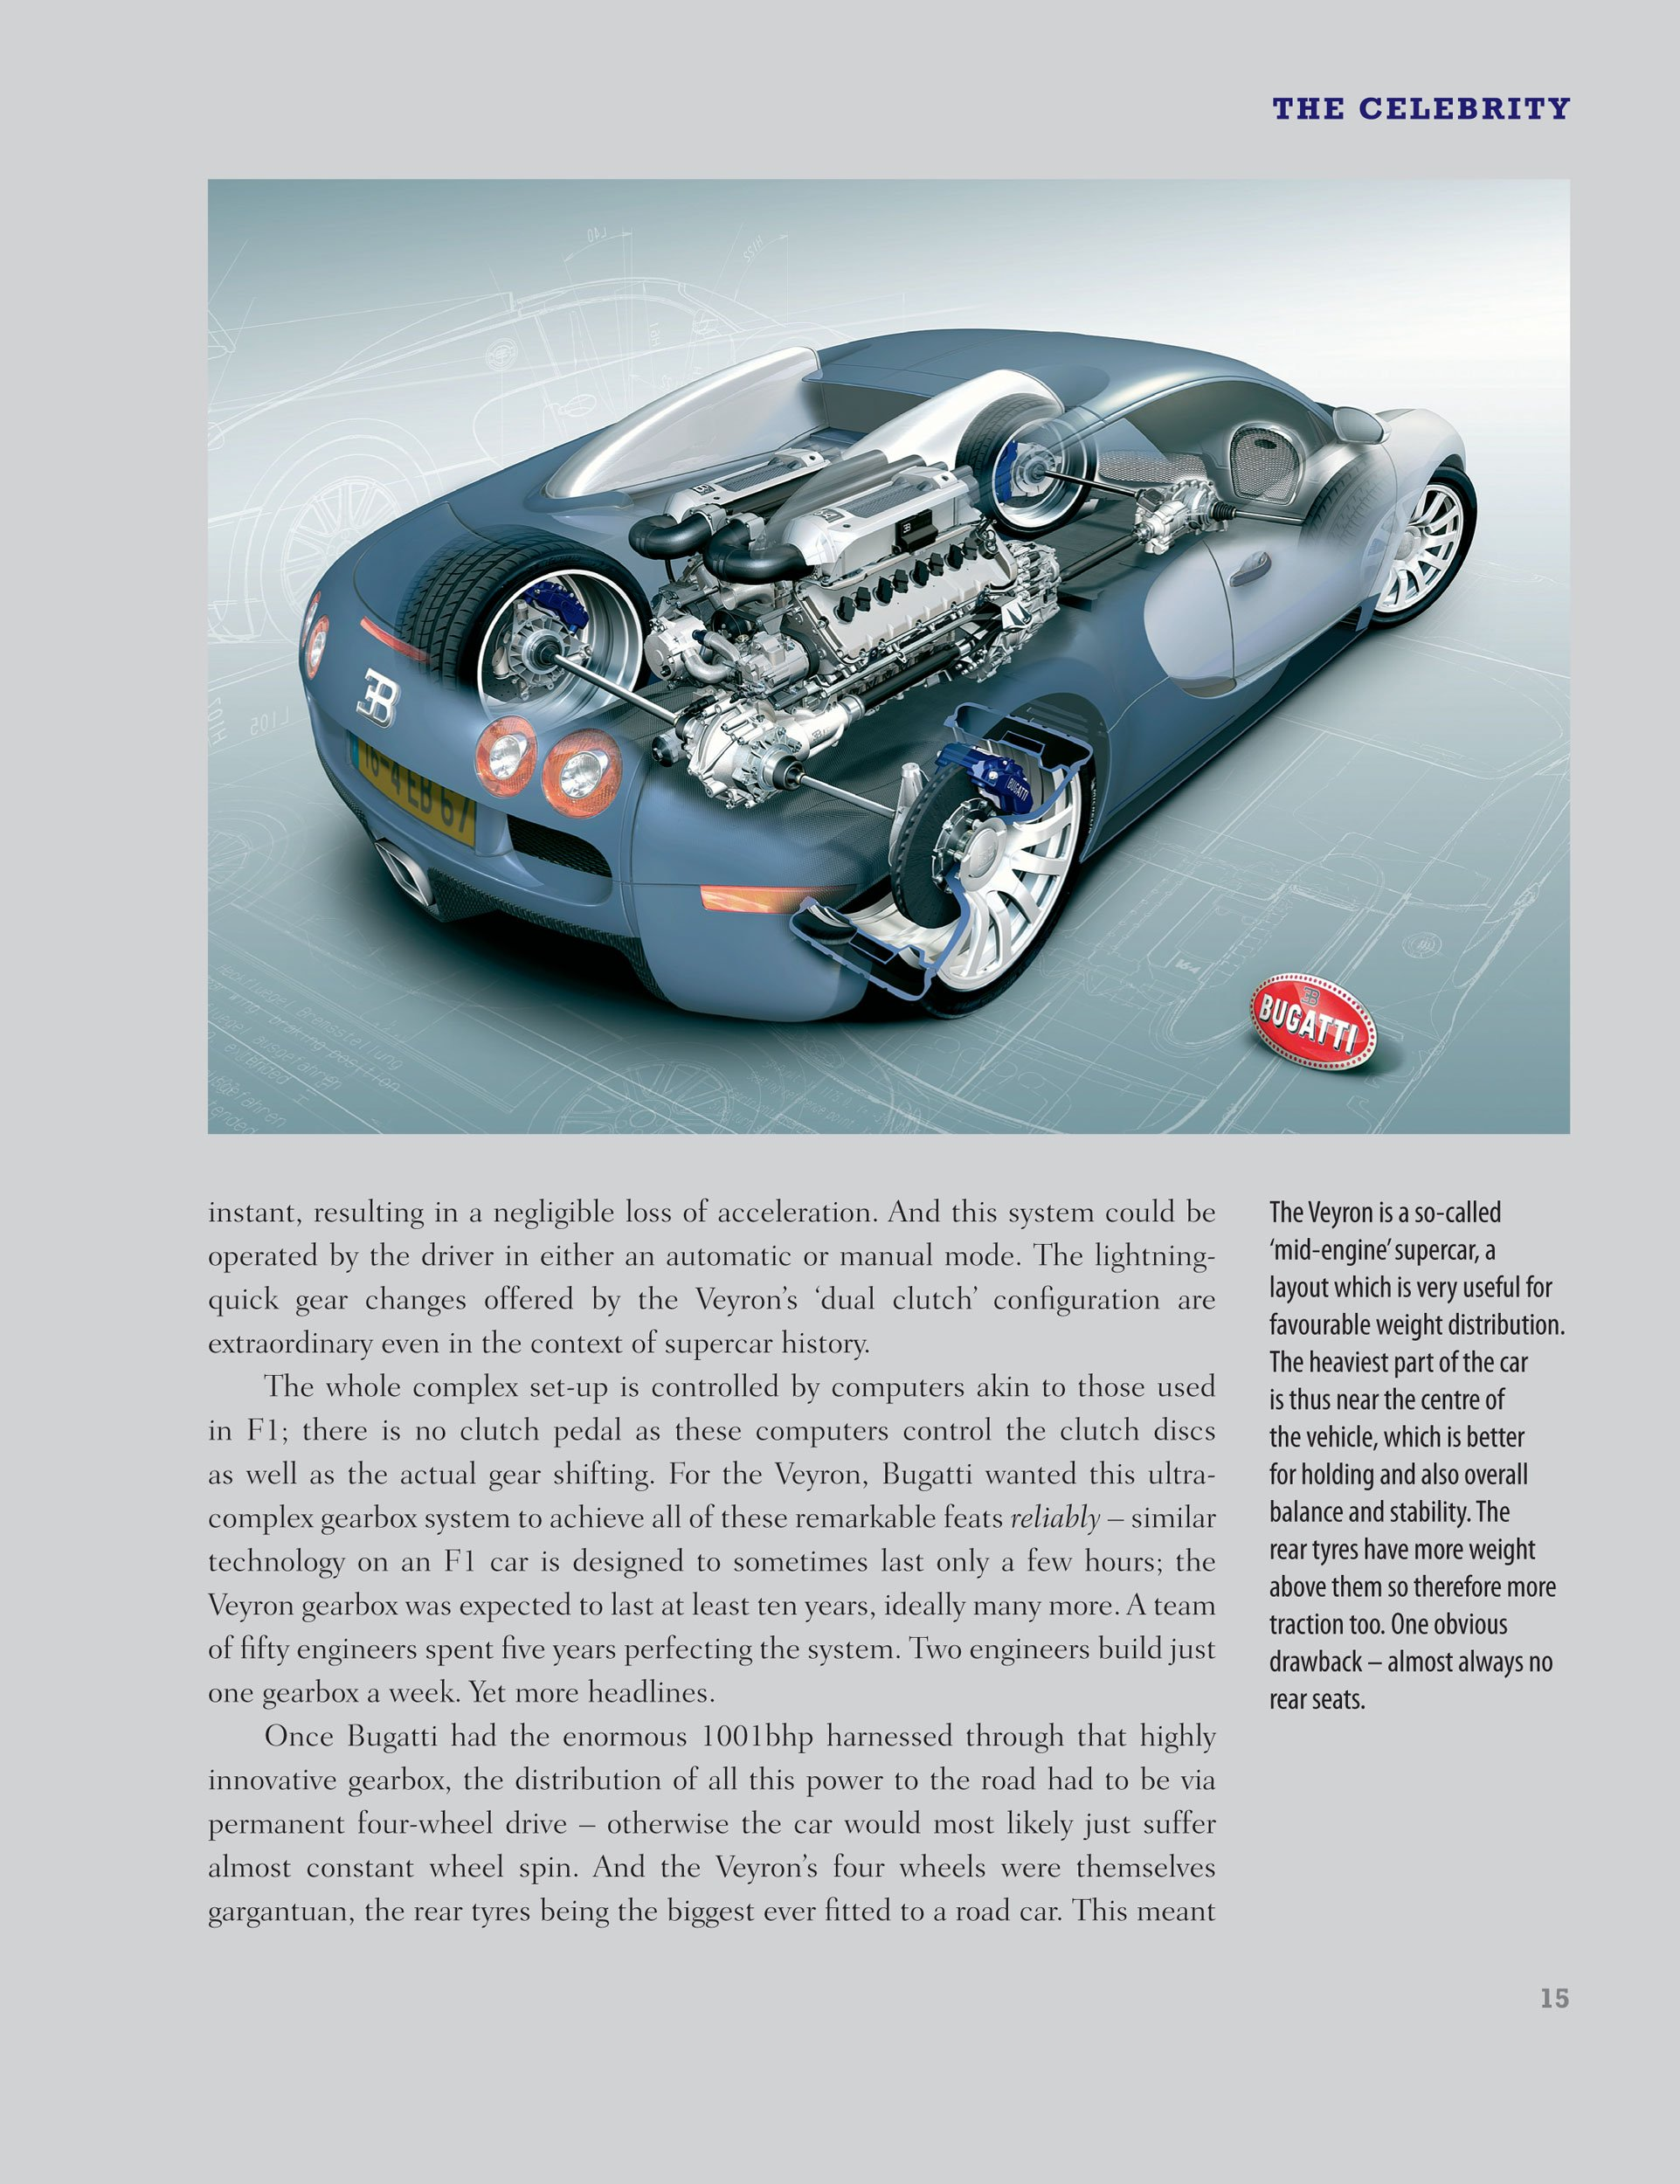 Bugatti Veyron: A Quest for Perfection - The Story of the Greatest Car in the World: Amazon.es: Martin Roach: Libros en idiomas extranjeros